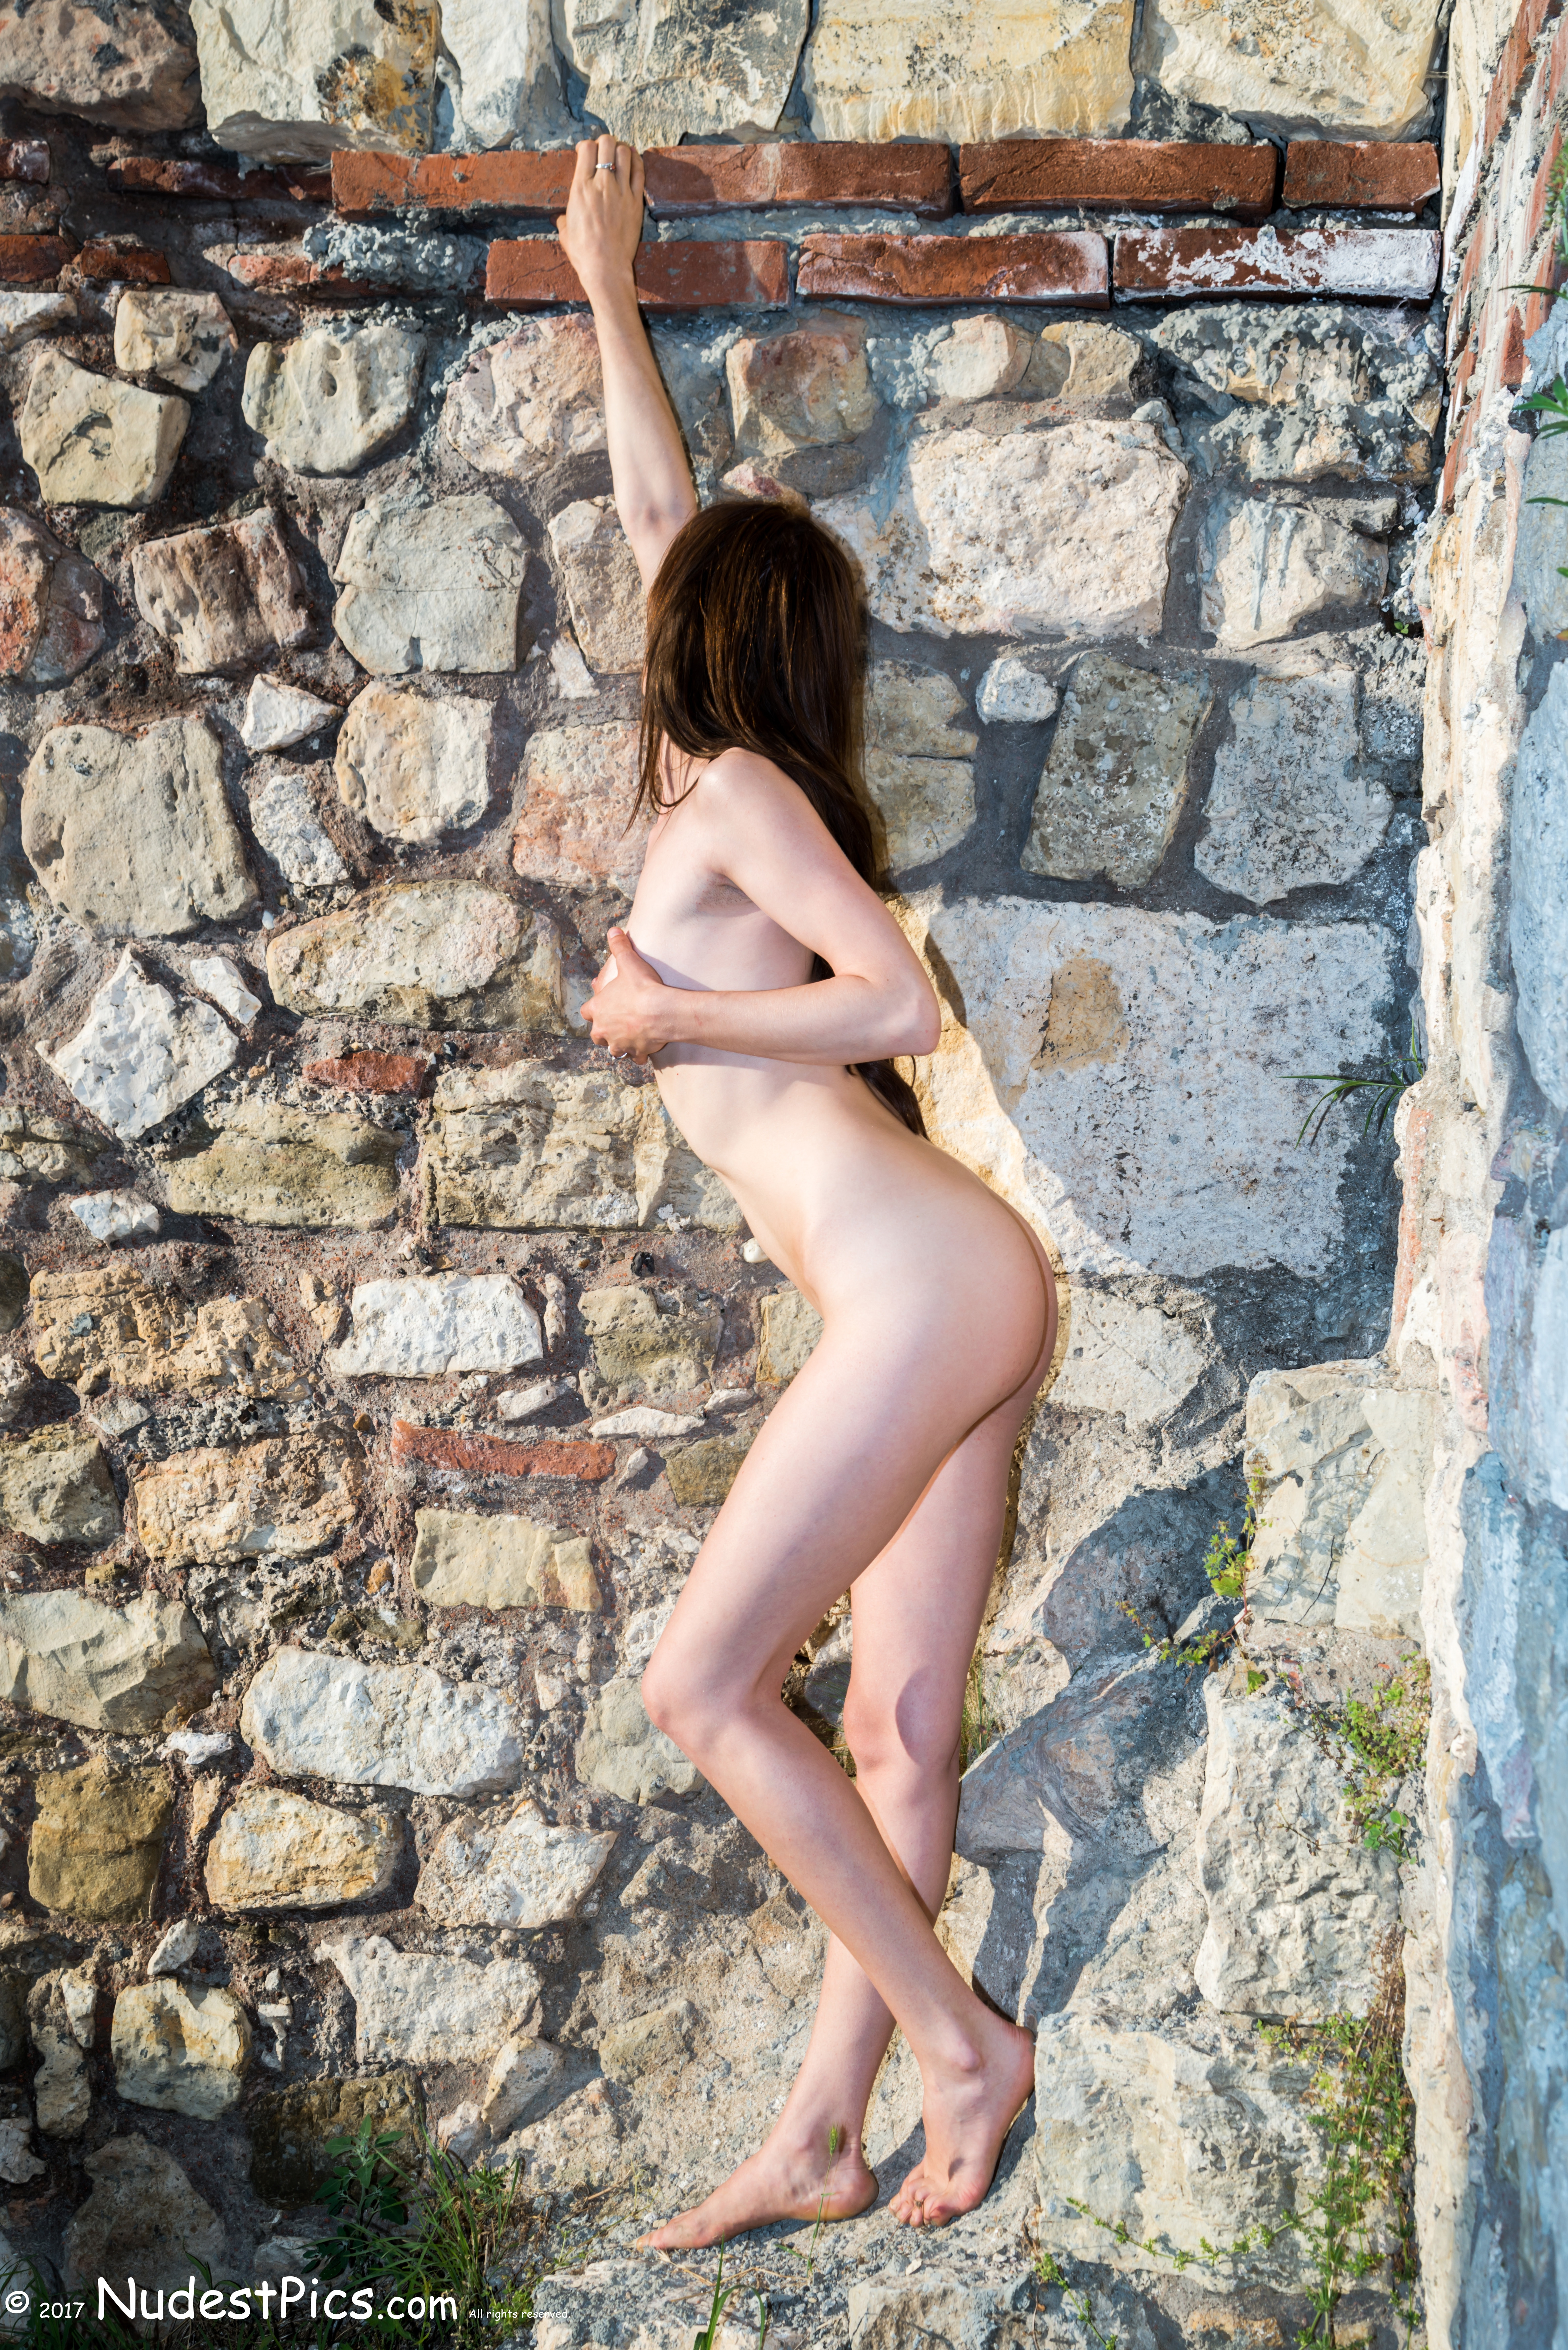 Thin Girl's Body at the Stone Wall nude HD